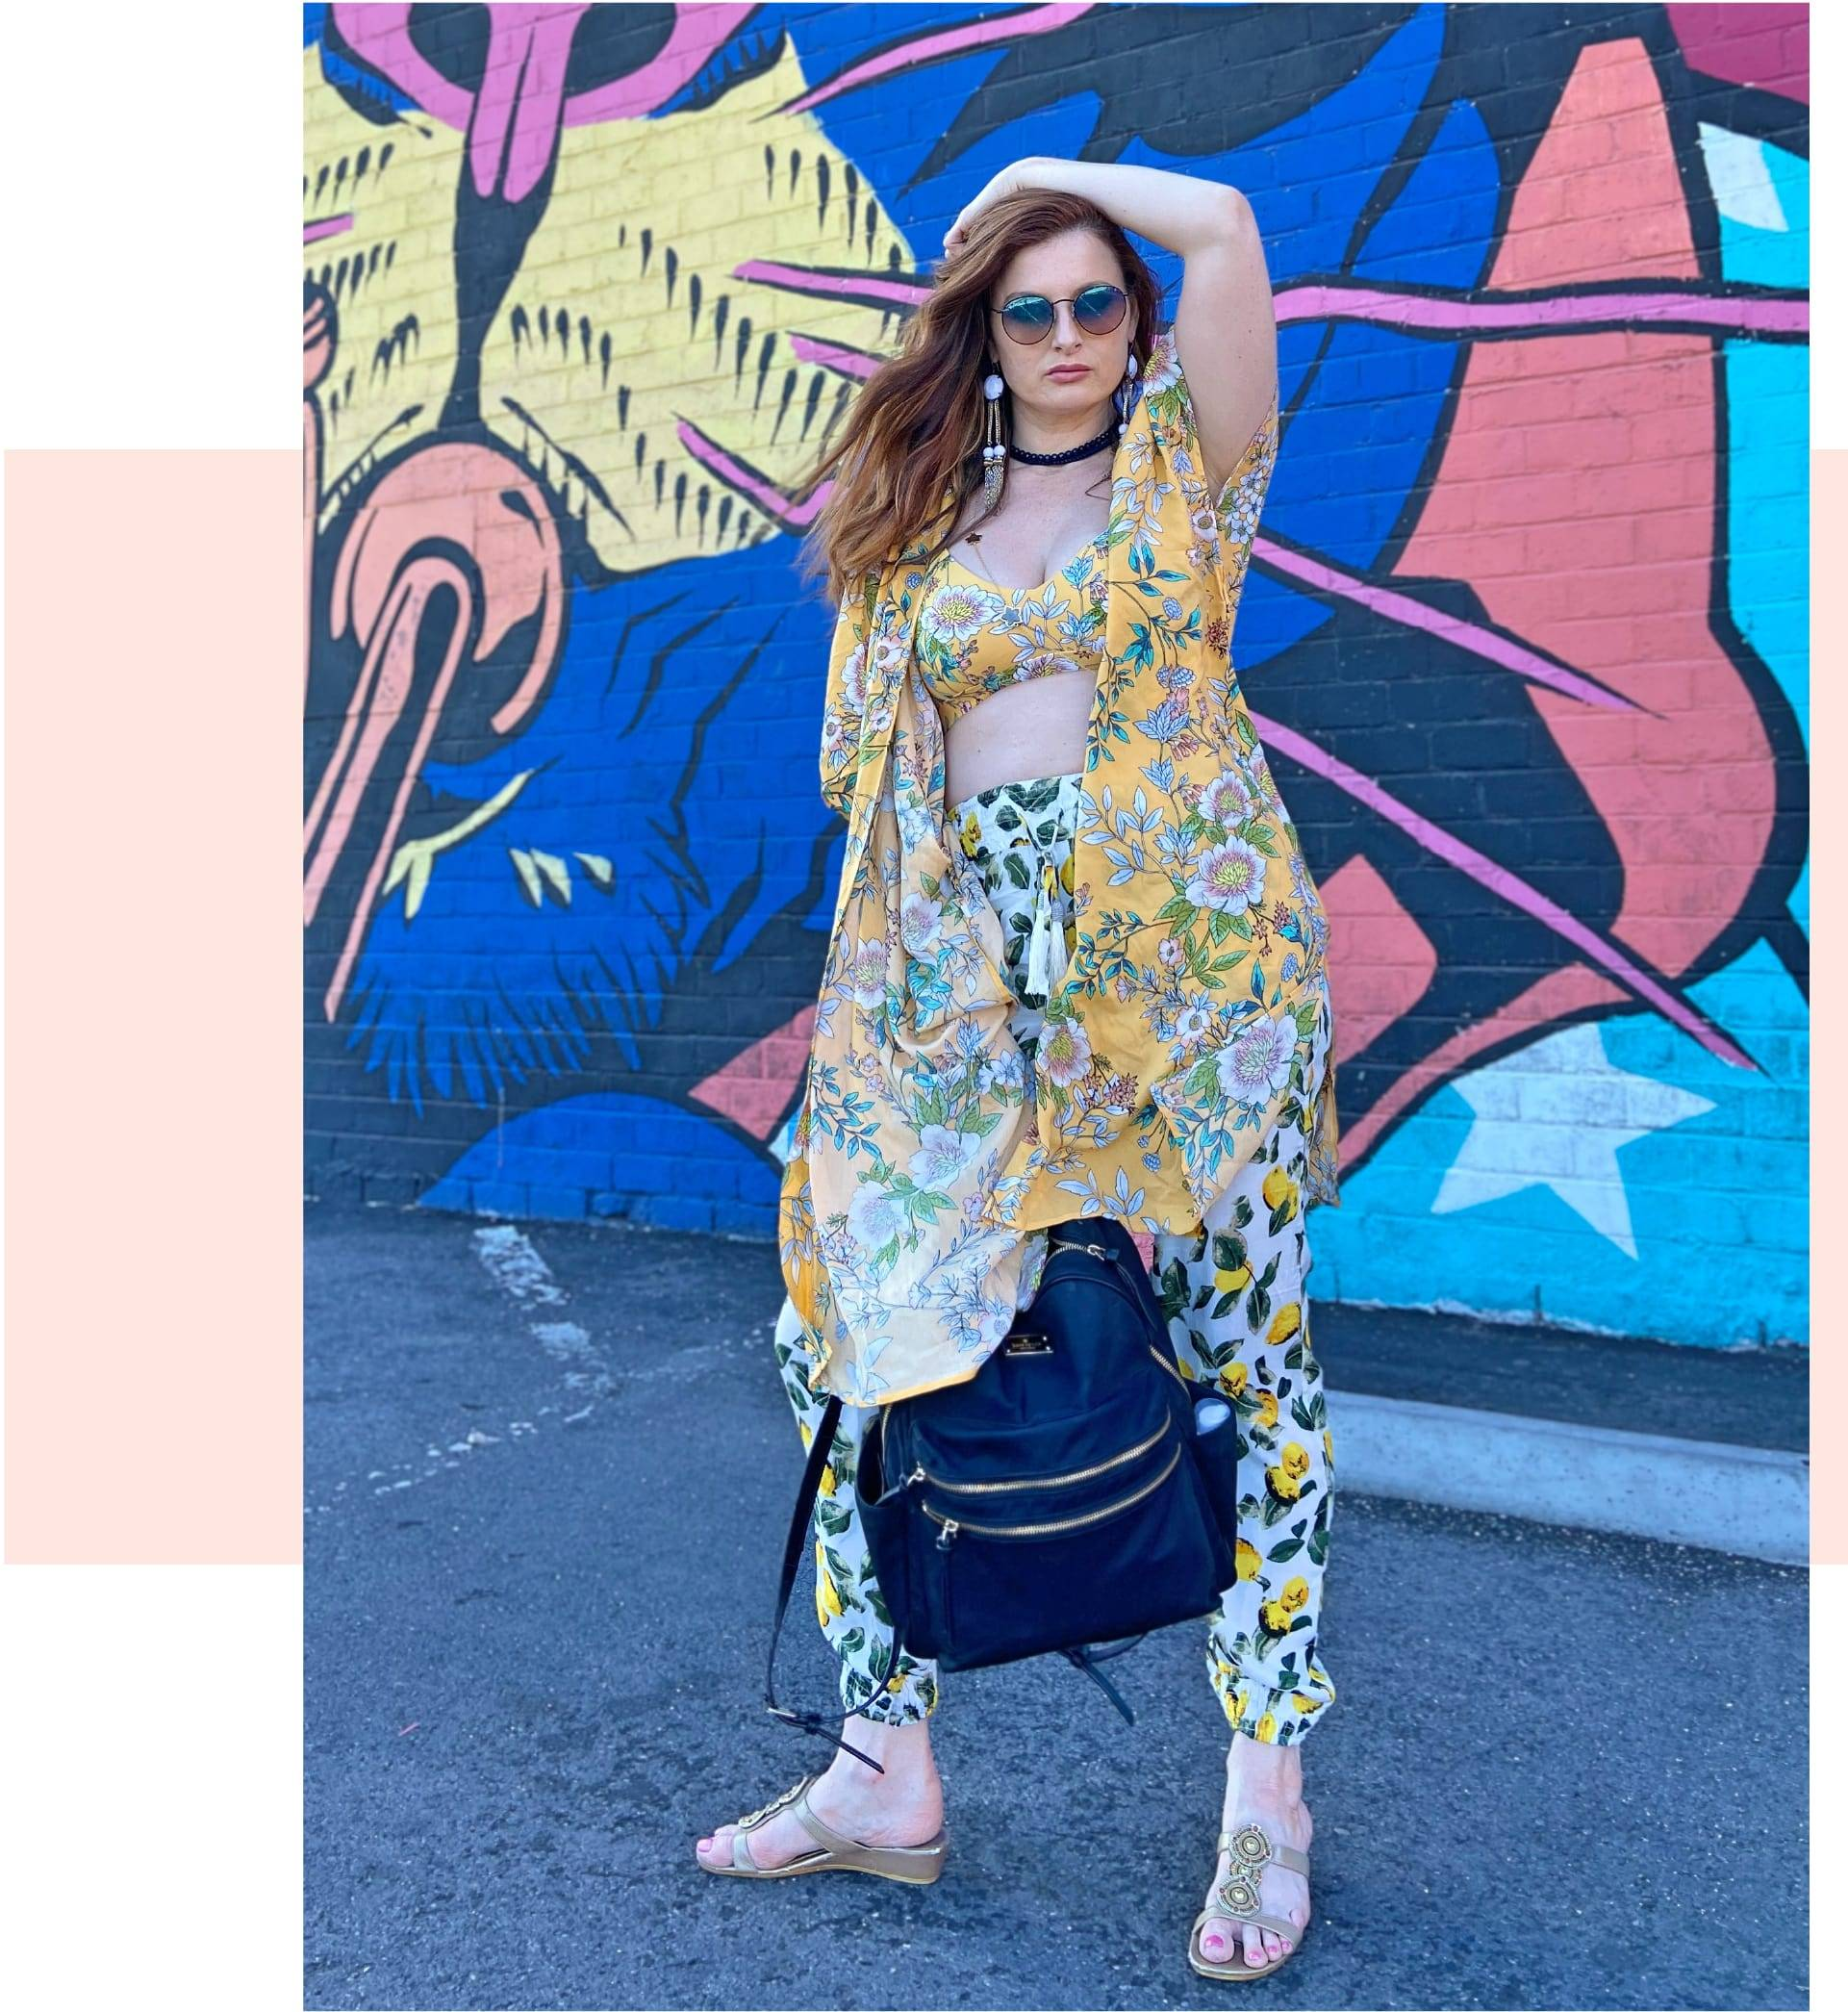 Rachel Reilly is wearing SKYE's Liz top and Nelly kimono from the Penelope collection.